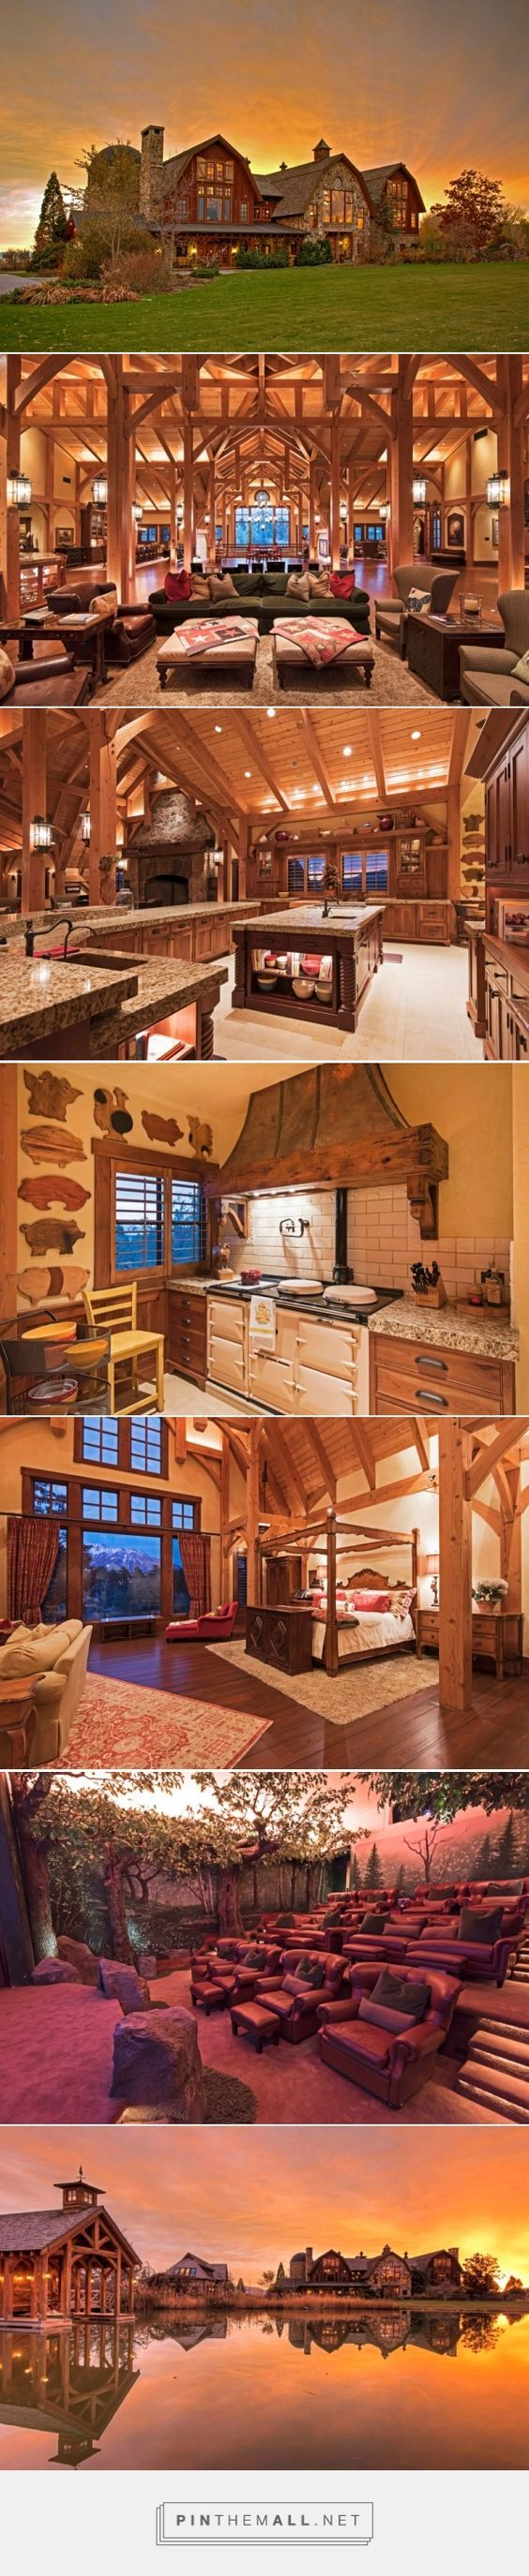 Wood Profits - For Sale: An Incredible Barn Mansion Built in Utah: -  Discover How You Can Start A Woodworking Business From Home Easily in 7 Days With NO Capital Needed!